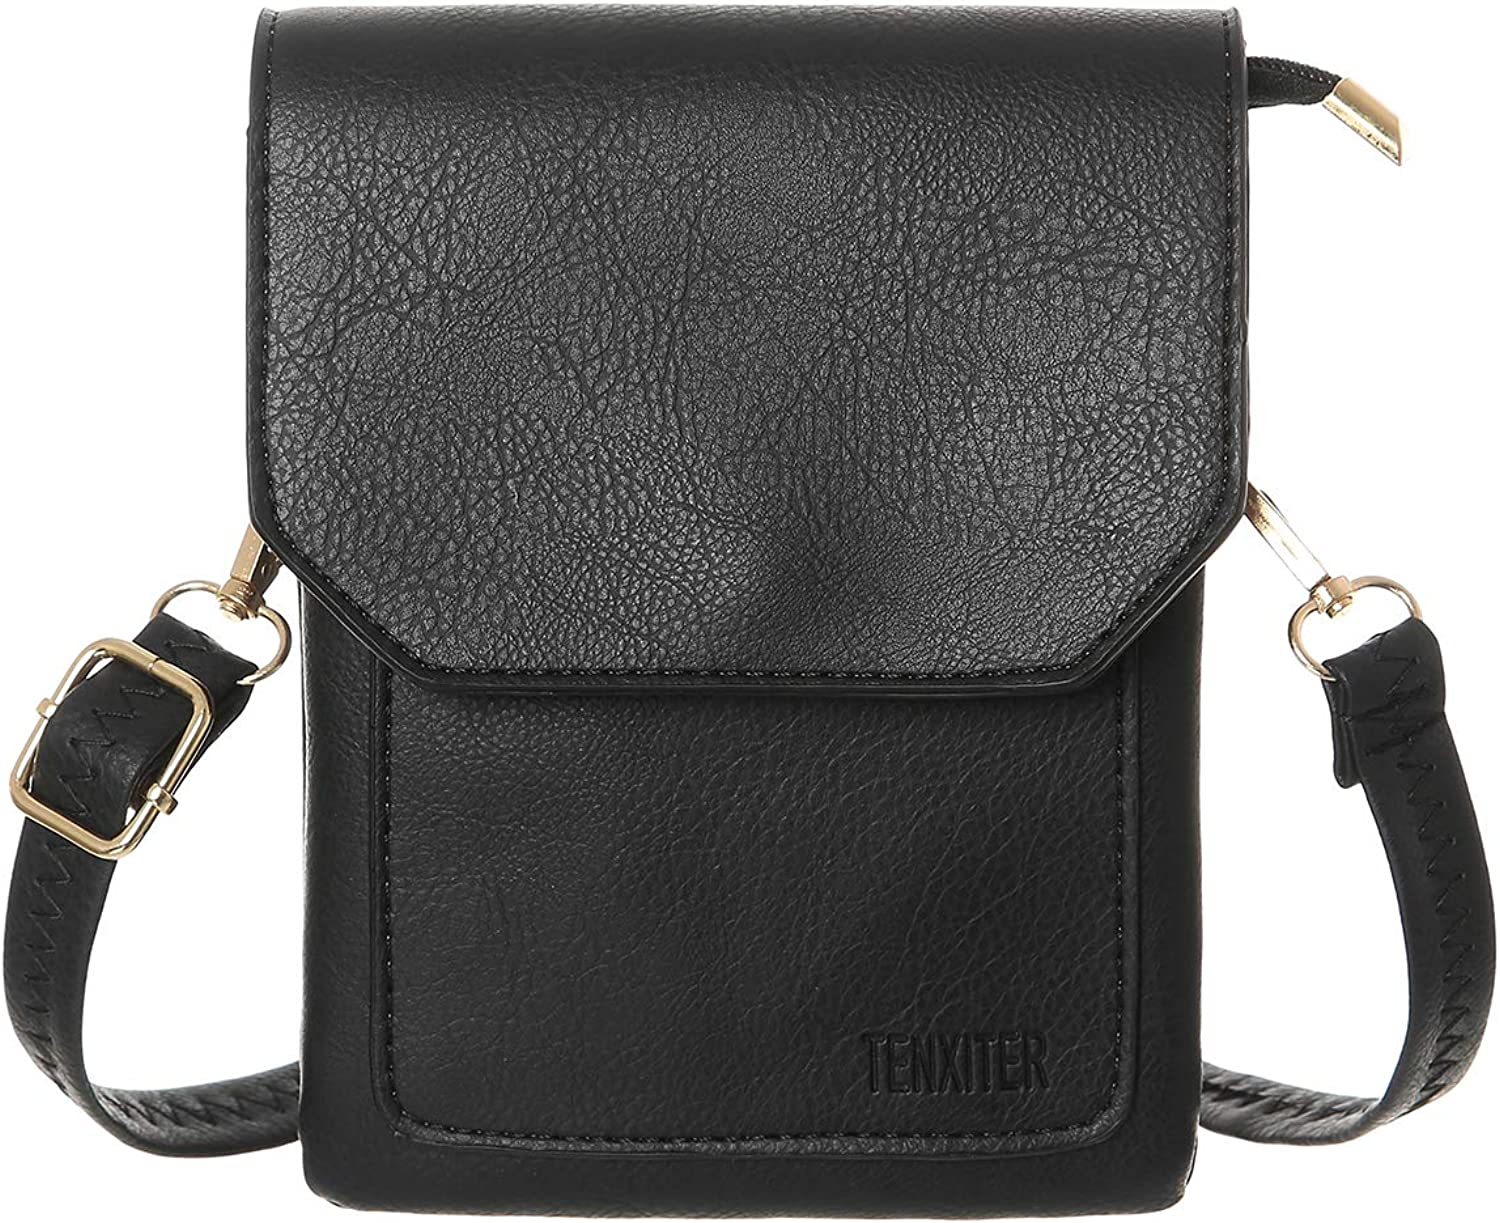 TENXITER Womens Leather Small Crossbody Bags Cell Phone Wallet Purse Bag for Women